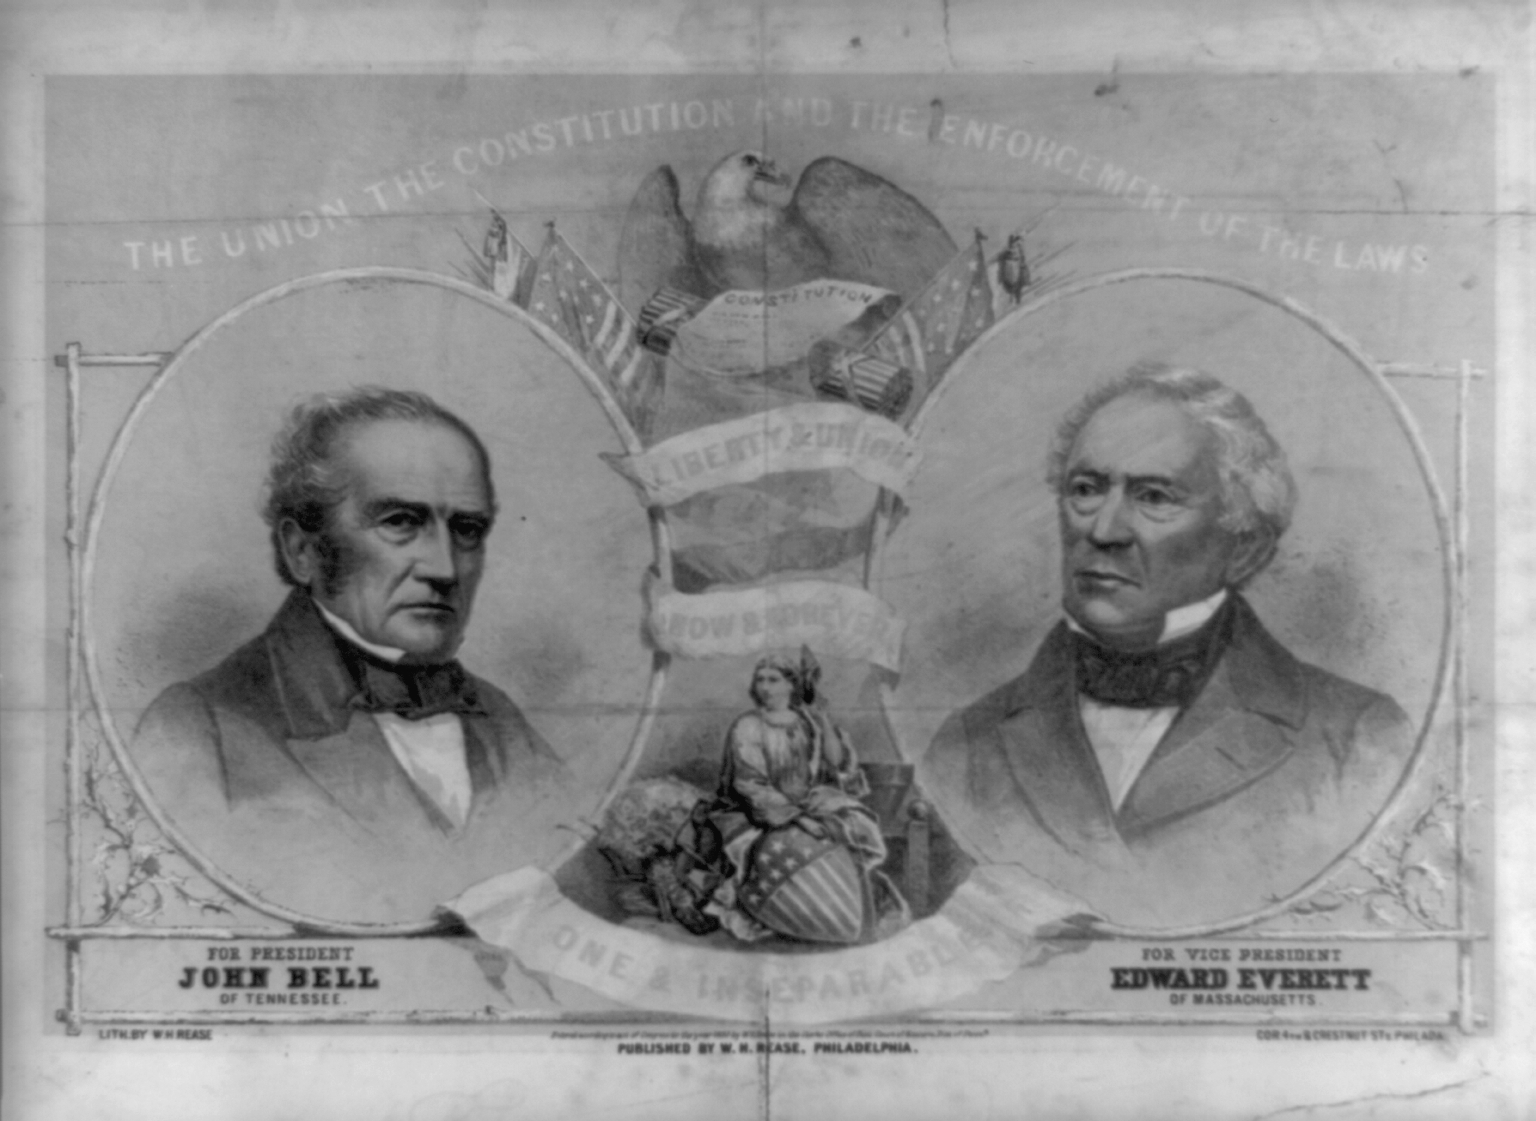 Constitutional Union campaign poster depicting Bell & Everret